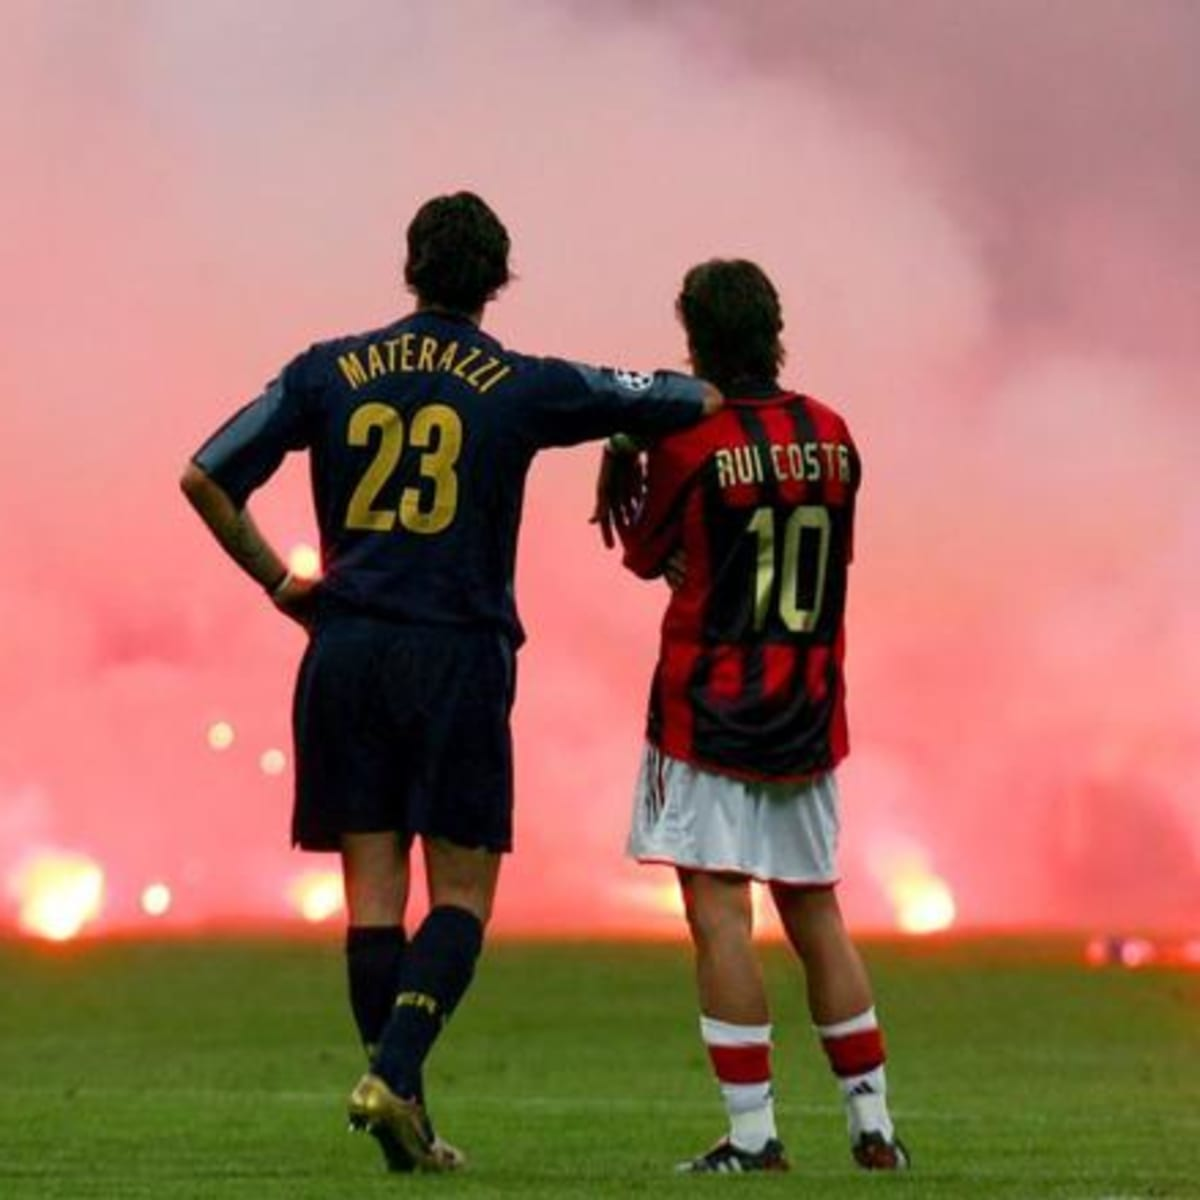 15 Best Football (Soccer) Derbies/Rivalries in the World - HowTheyPlay